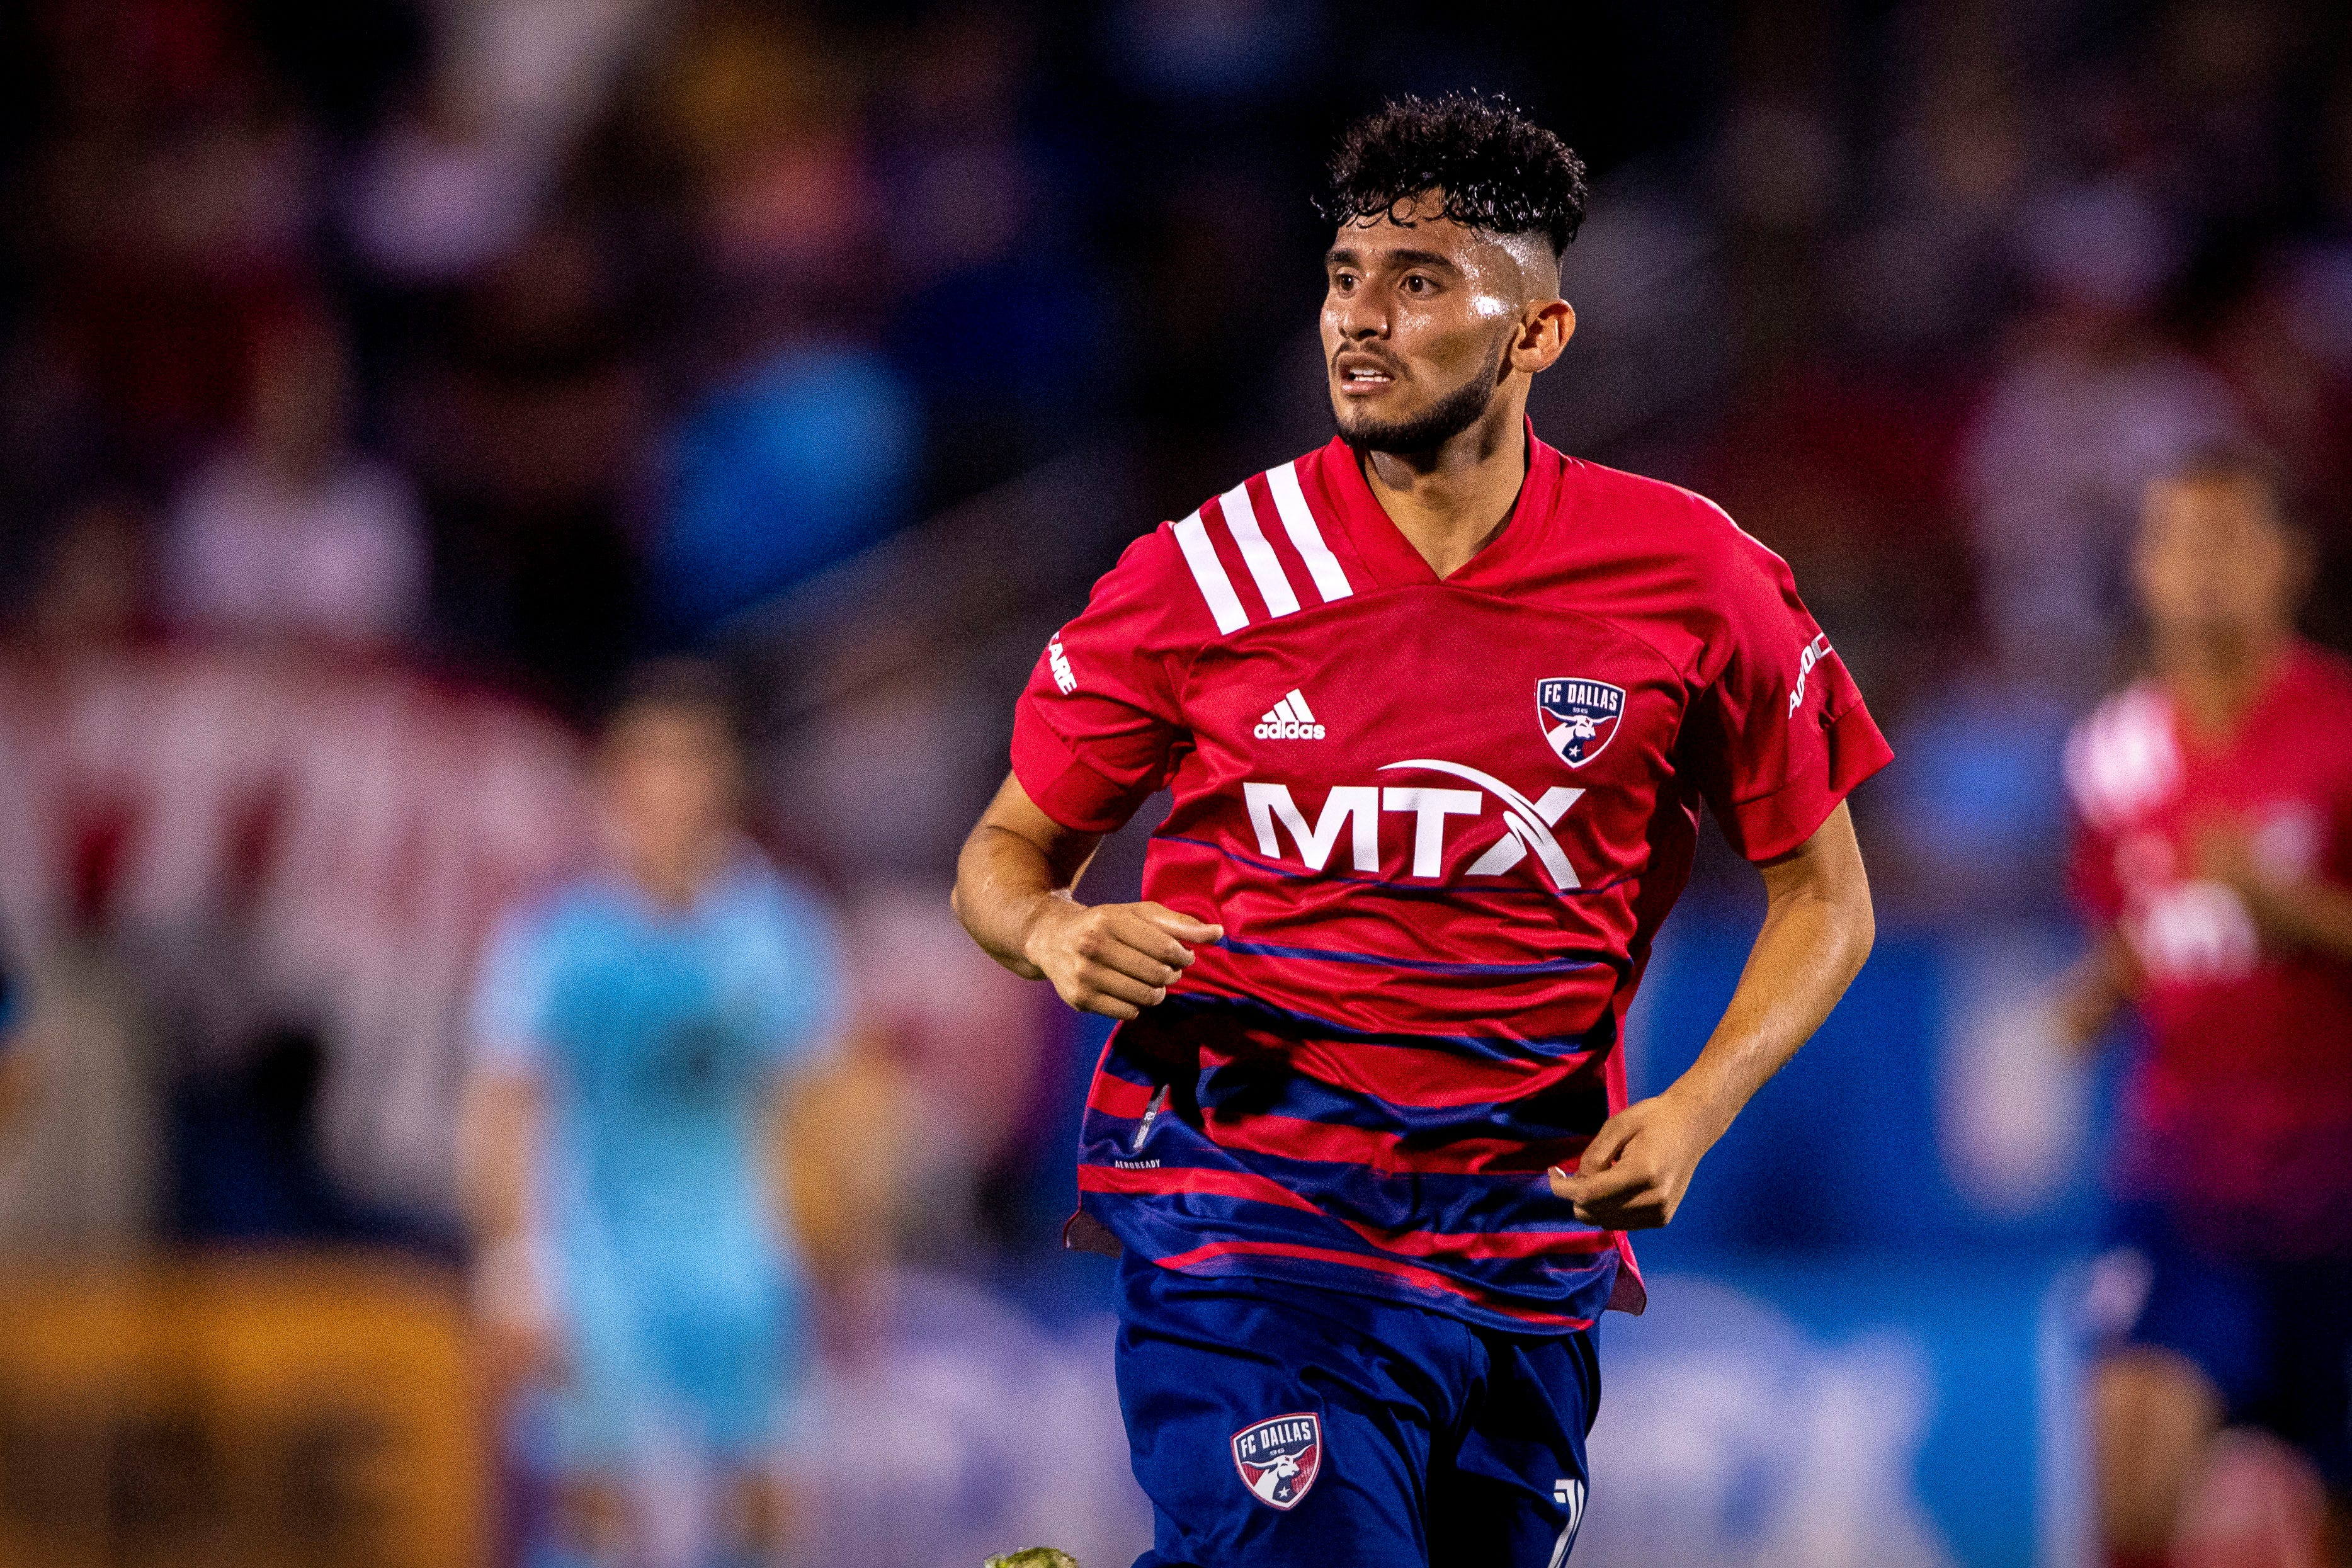 MLS notebook: Ricardo Pepi's star continues to rise. USMNT keeps World Cup qualifying hopes alive.